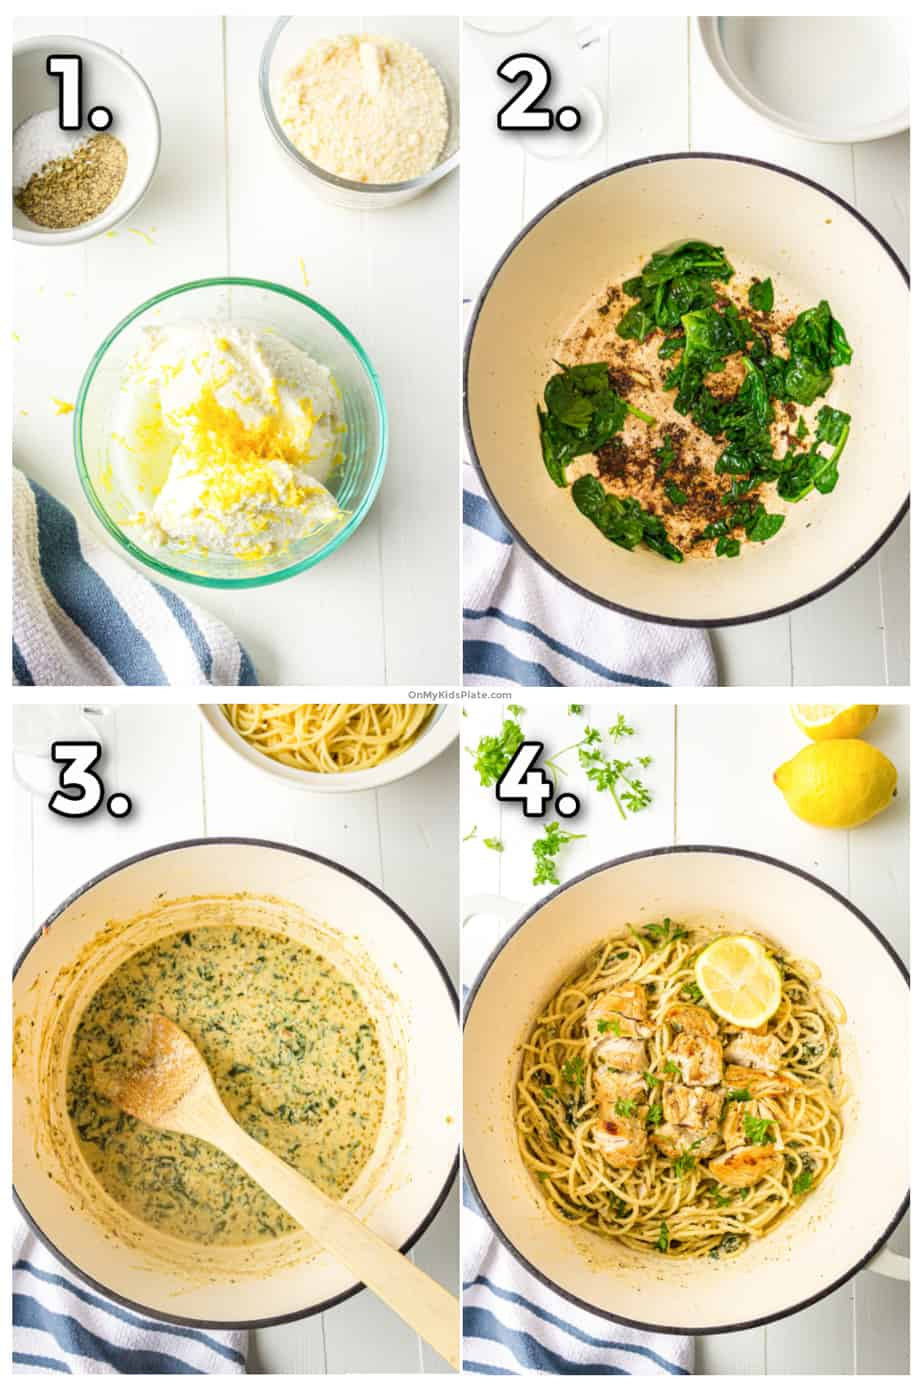 Step by step images showing mixing the ricotta sauce, cooking the spinach and chicken making a sauce and finishing the dish tossing the pasta in the sauce with chicken, lemon and herbs.